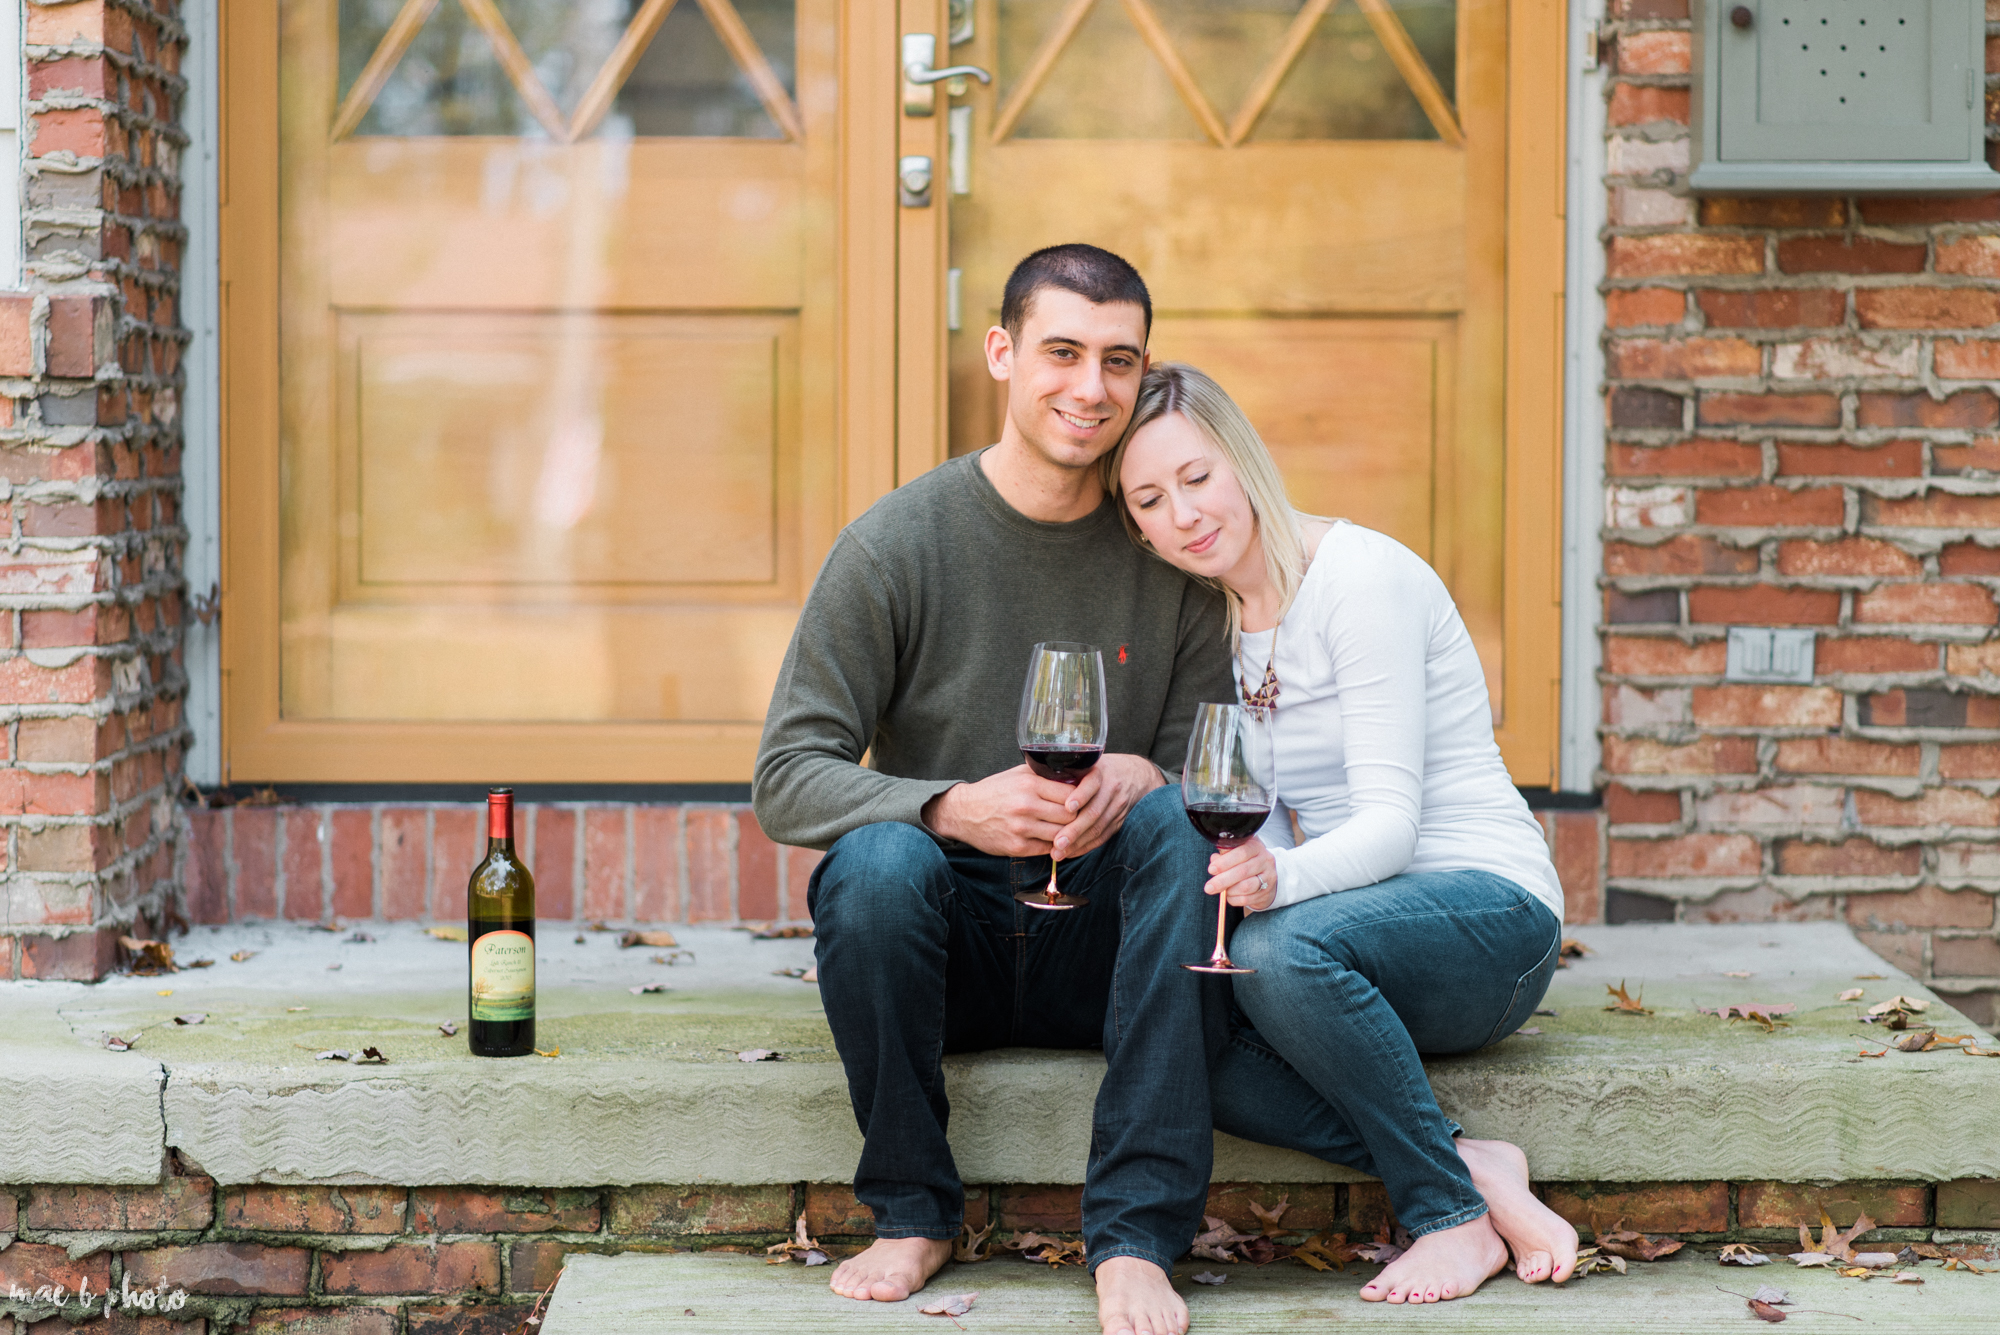 Emily & Michael's Lifestyle Engagement Session in Youngstown Ohio by Mae B Photo-35.jpg